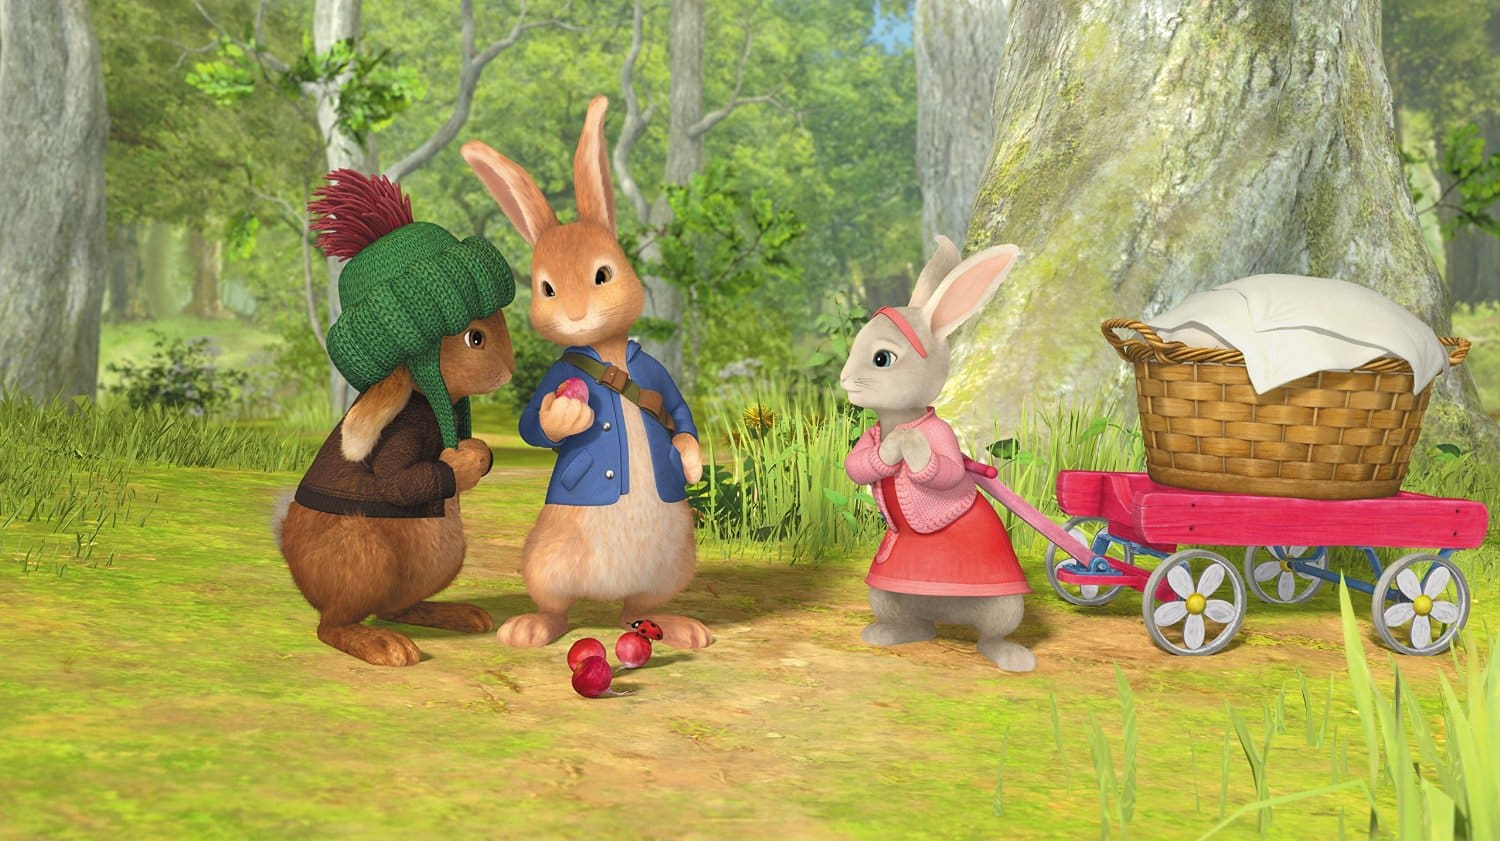 Peter Hase Serie